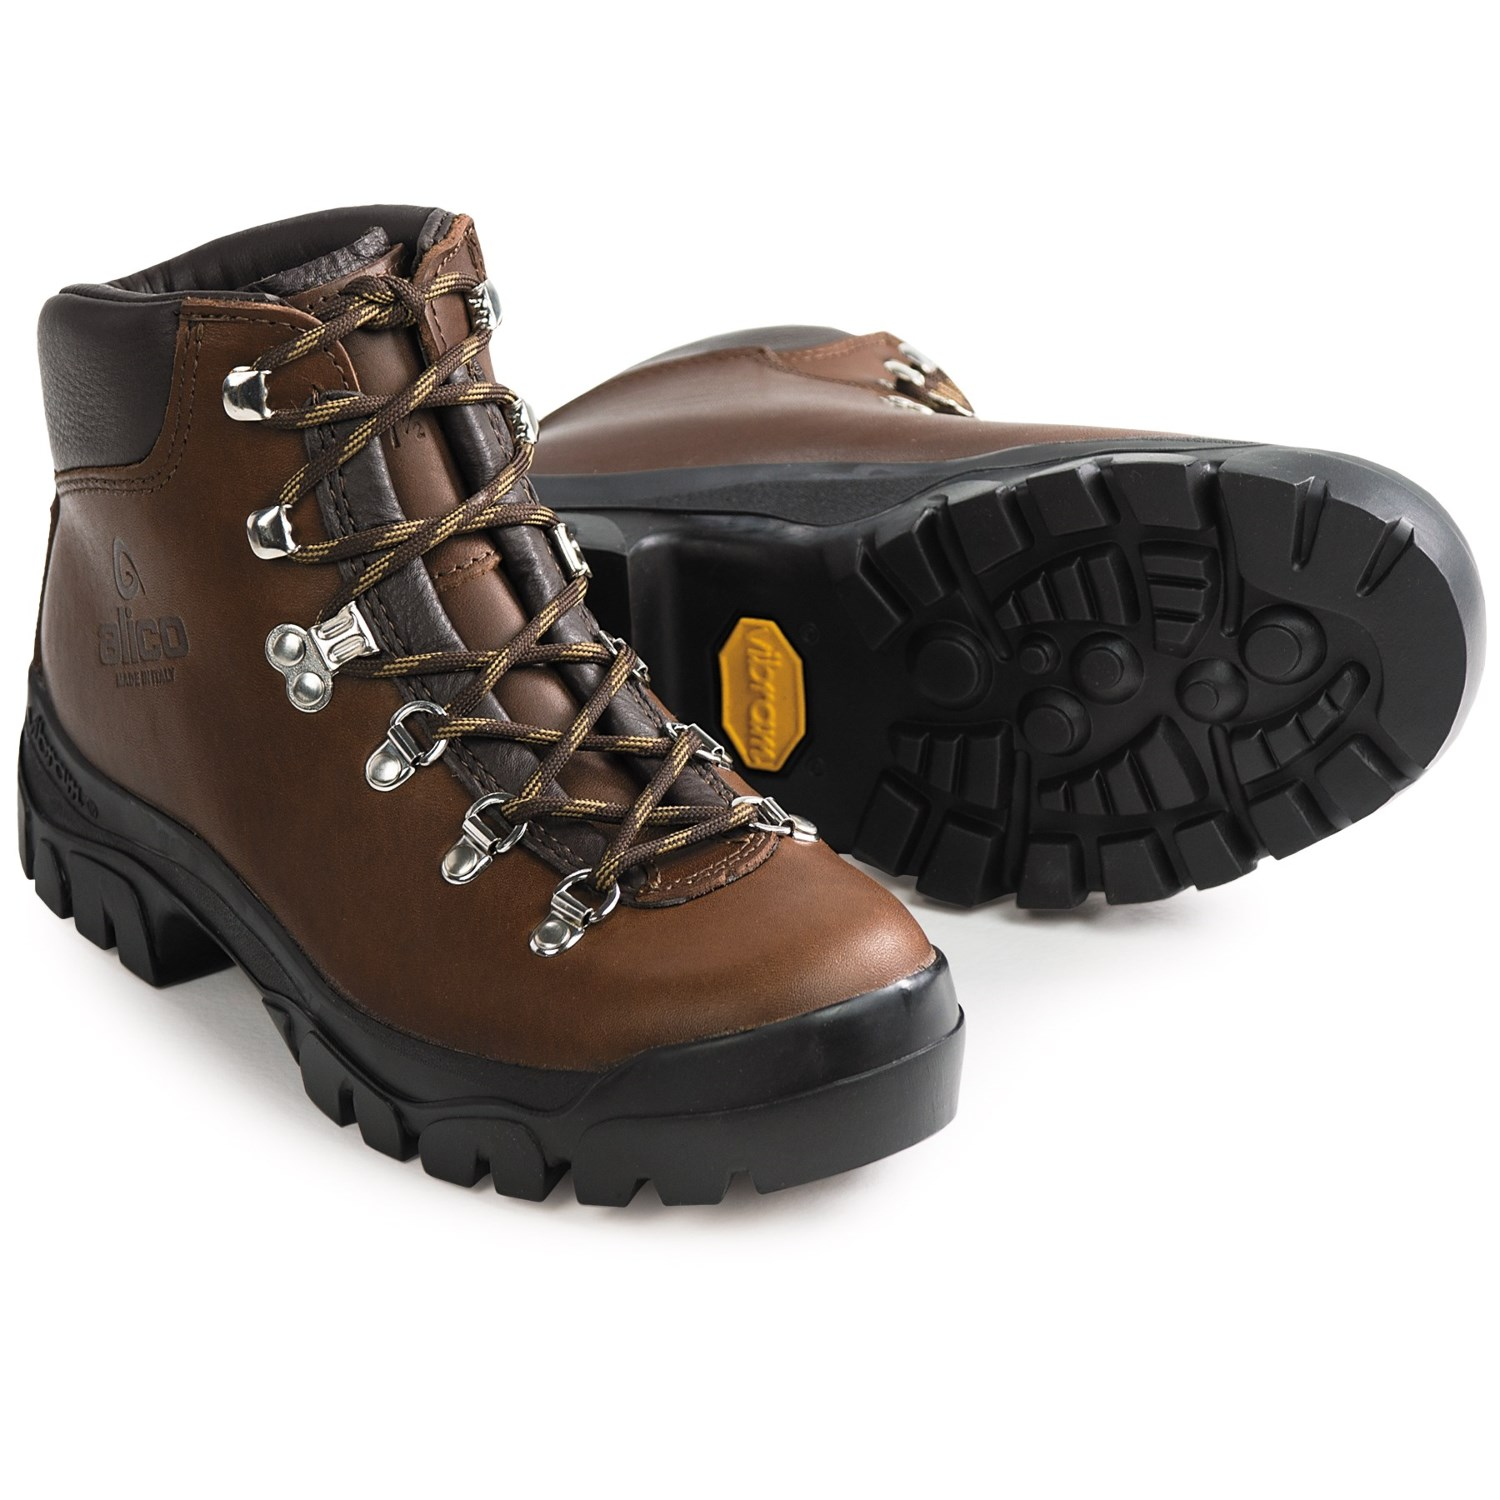 Alico Made In Italy Backcountry Hiking Boots For Women